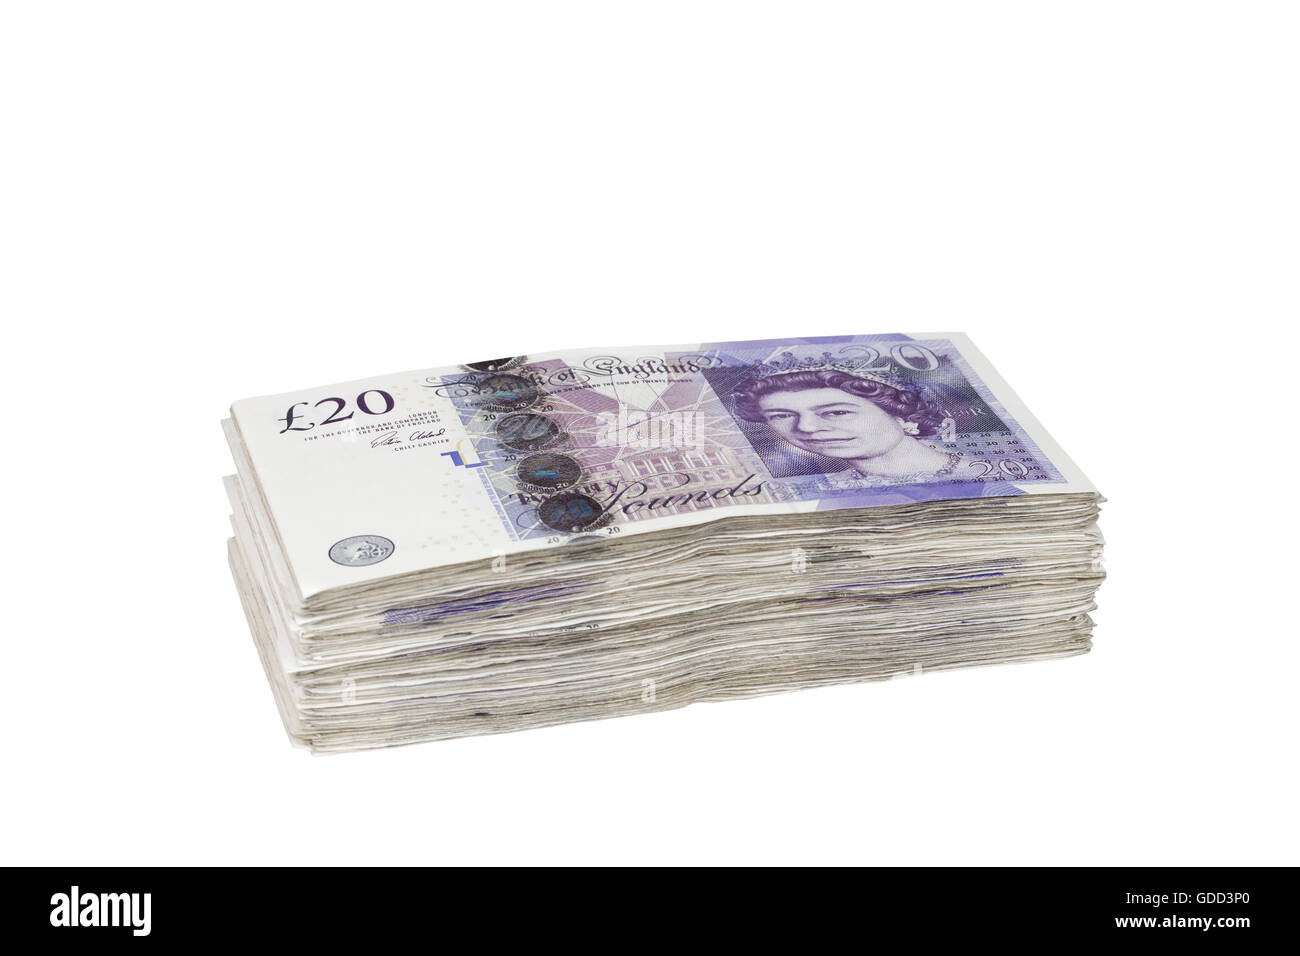 Pile of british 20 pound banknotes Stock Photo